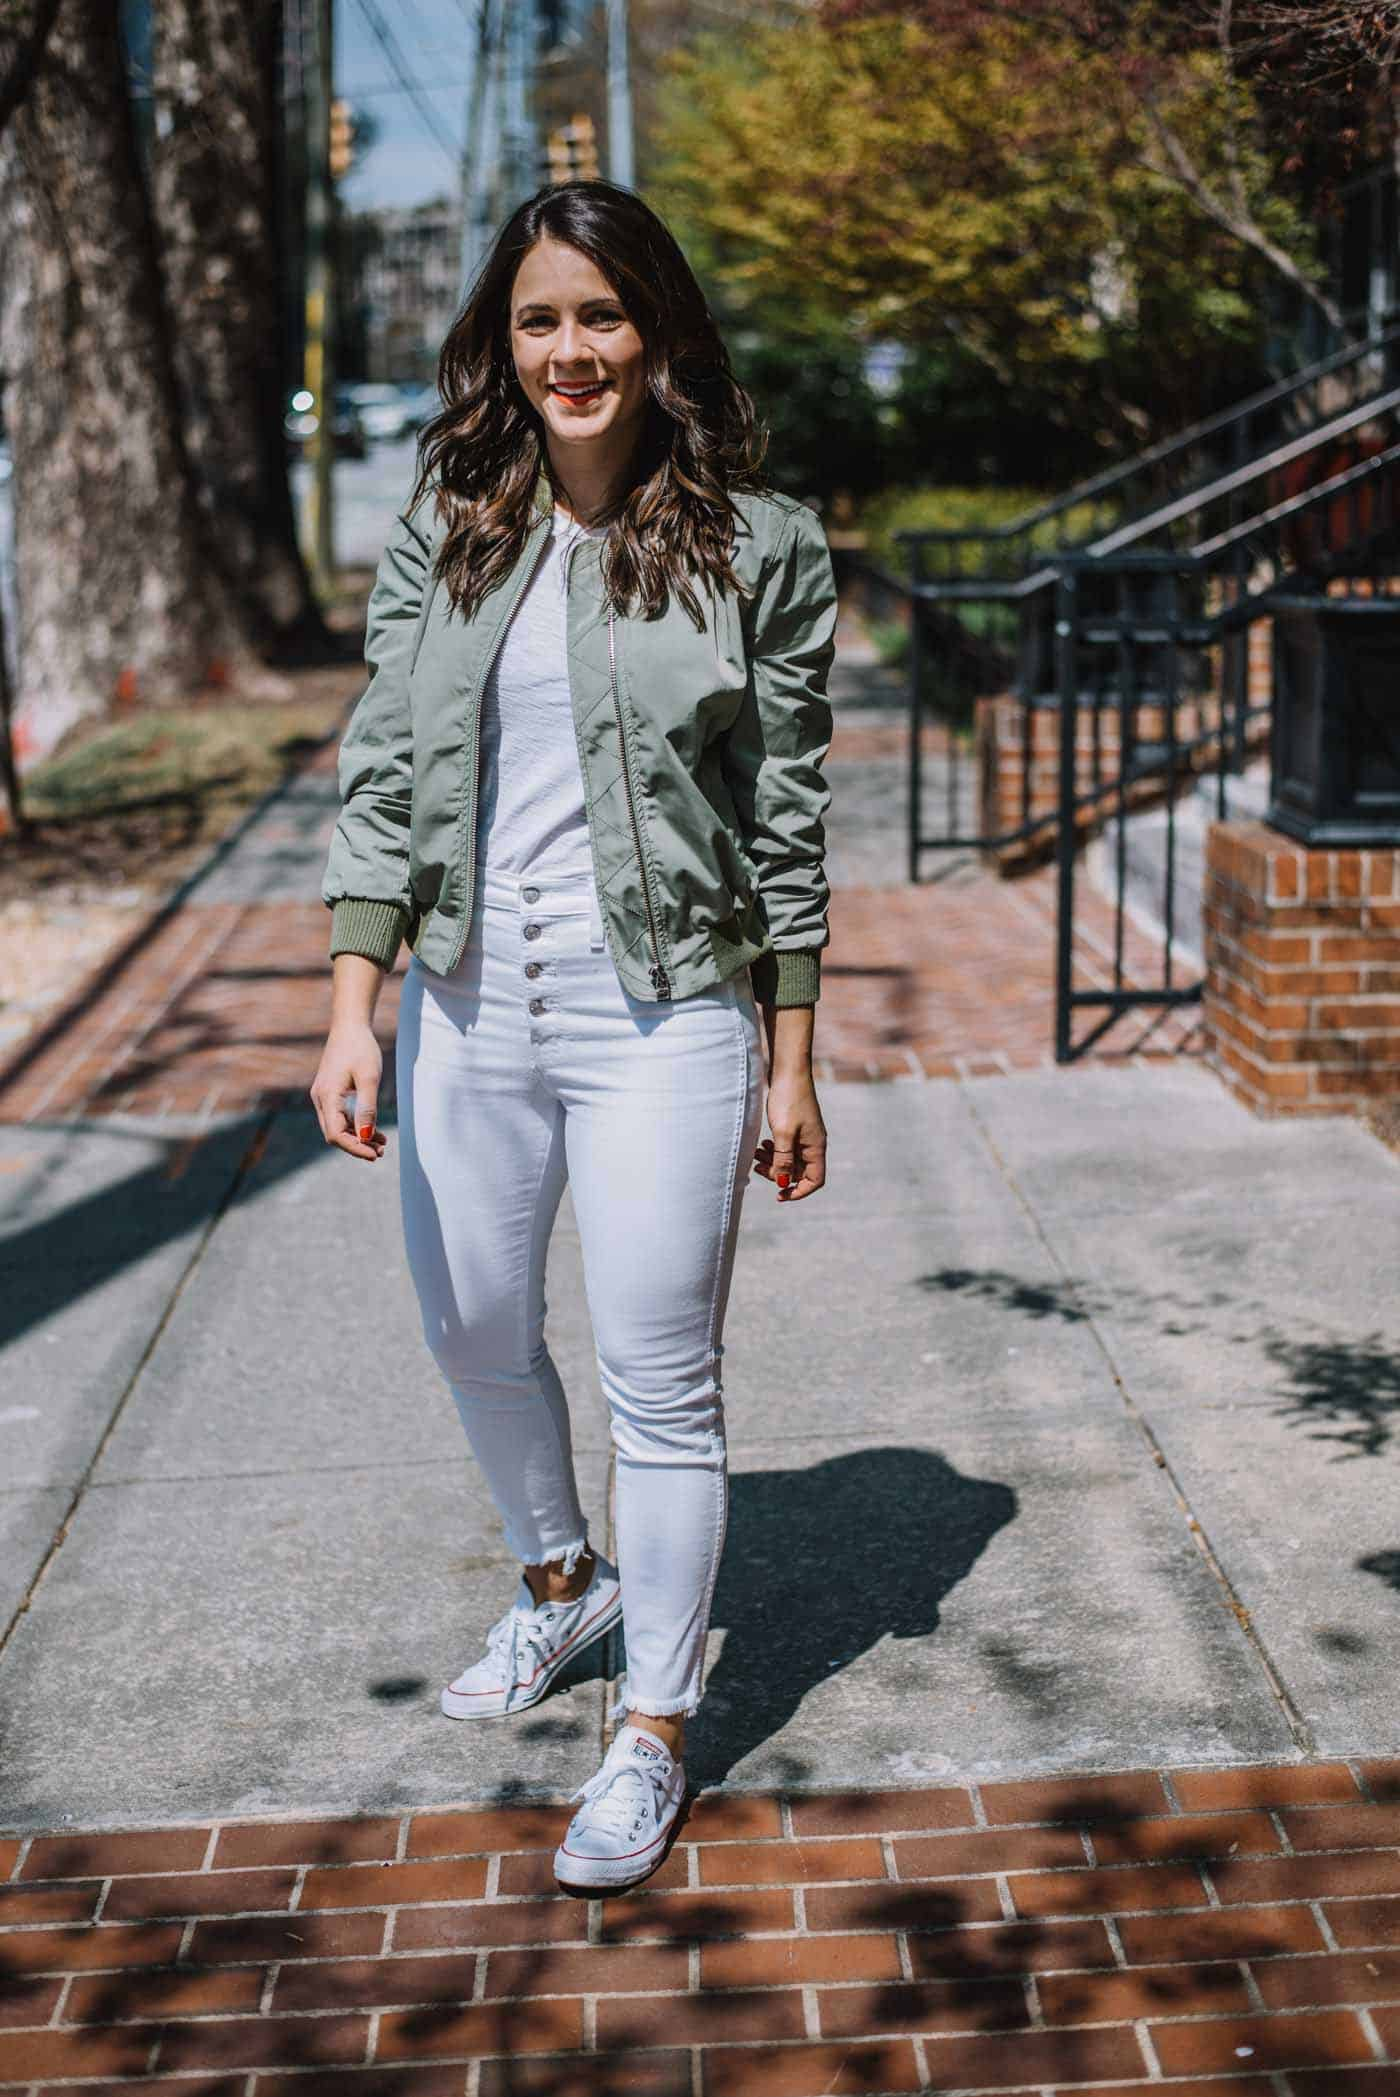 bomber jacket for spring, white jeans and converse, how to style a bomber jacket - My Style Vita